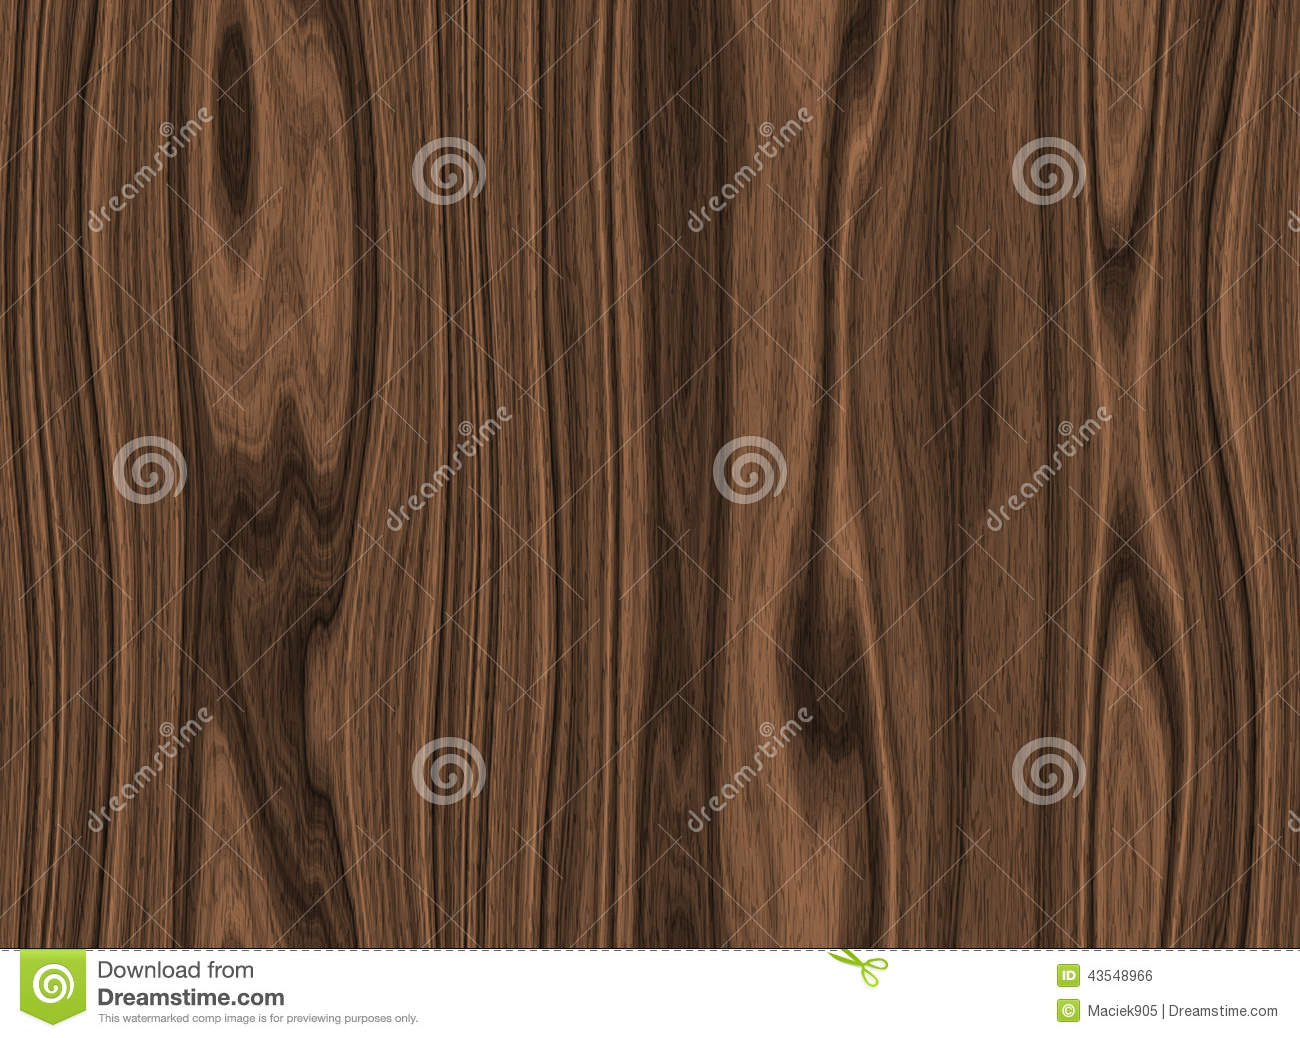 Can Wallpaper Be Used On Wood